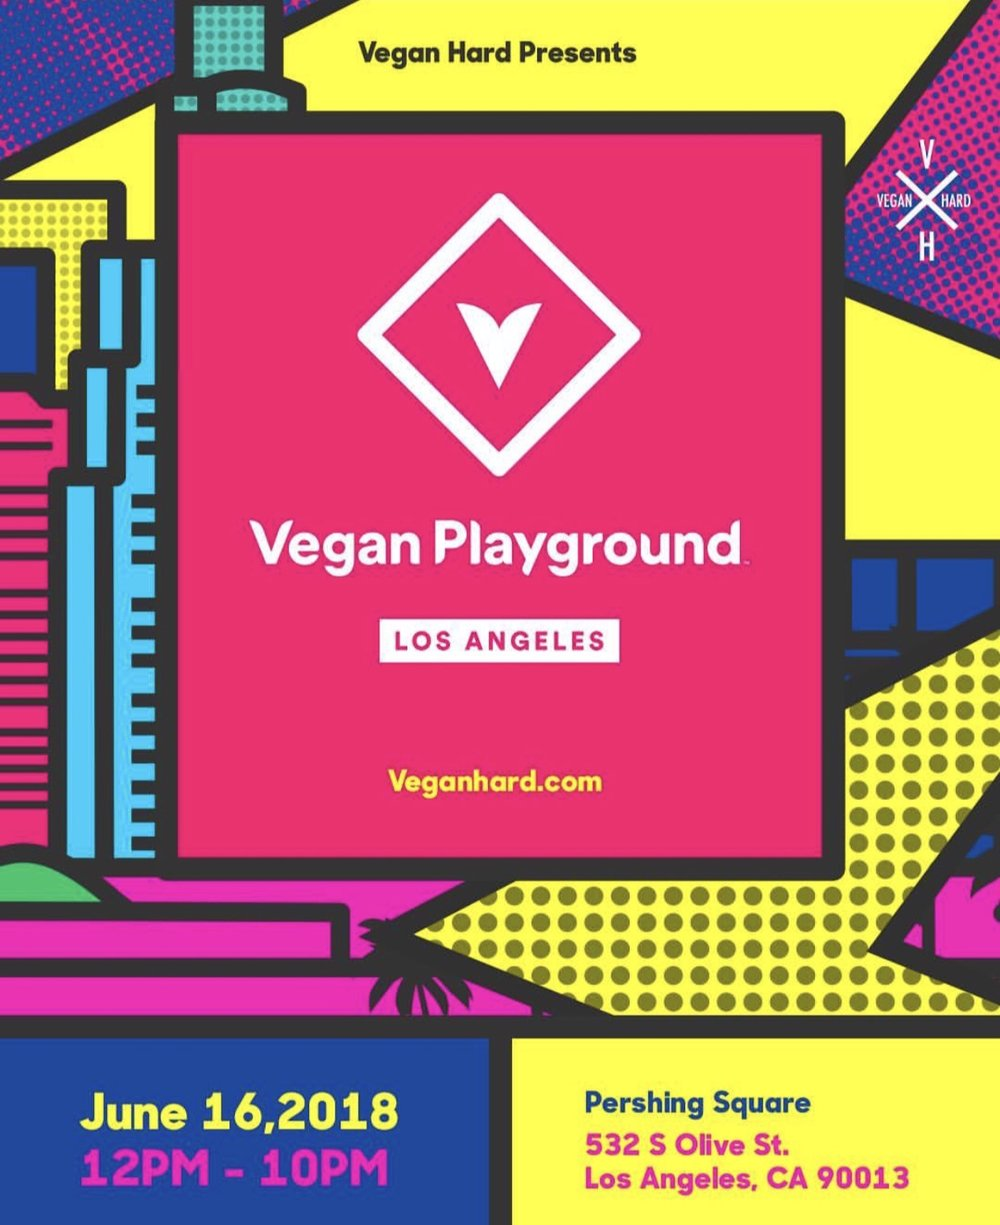 Vegan Playground.jpg